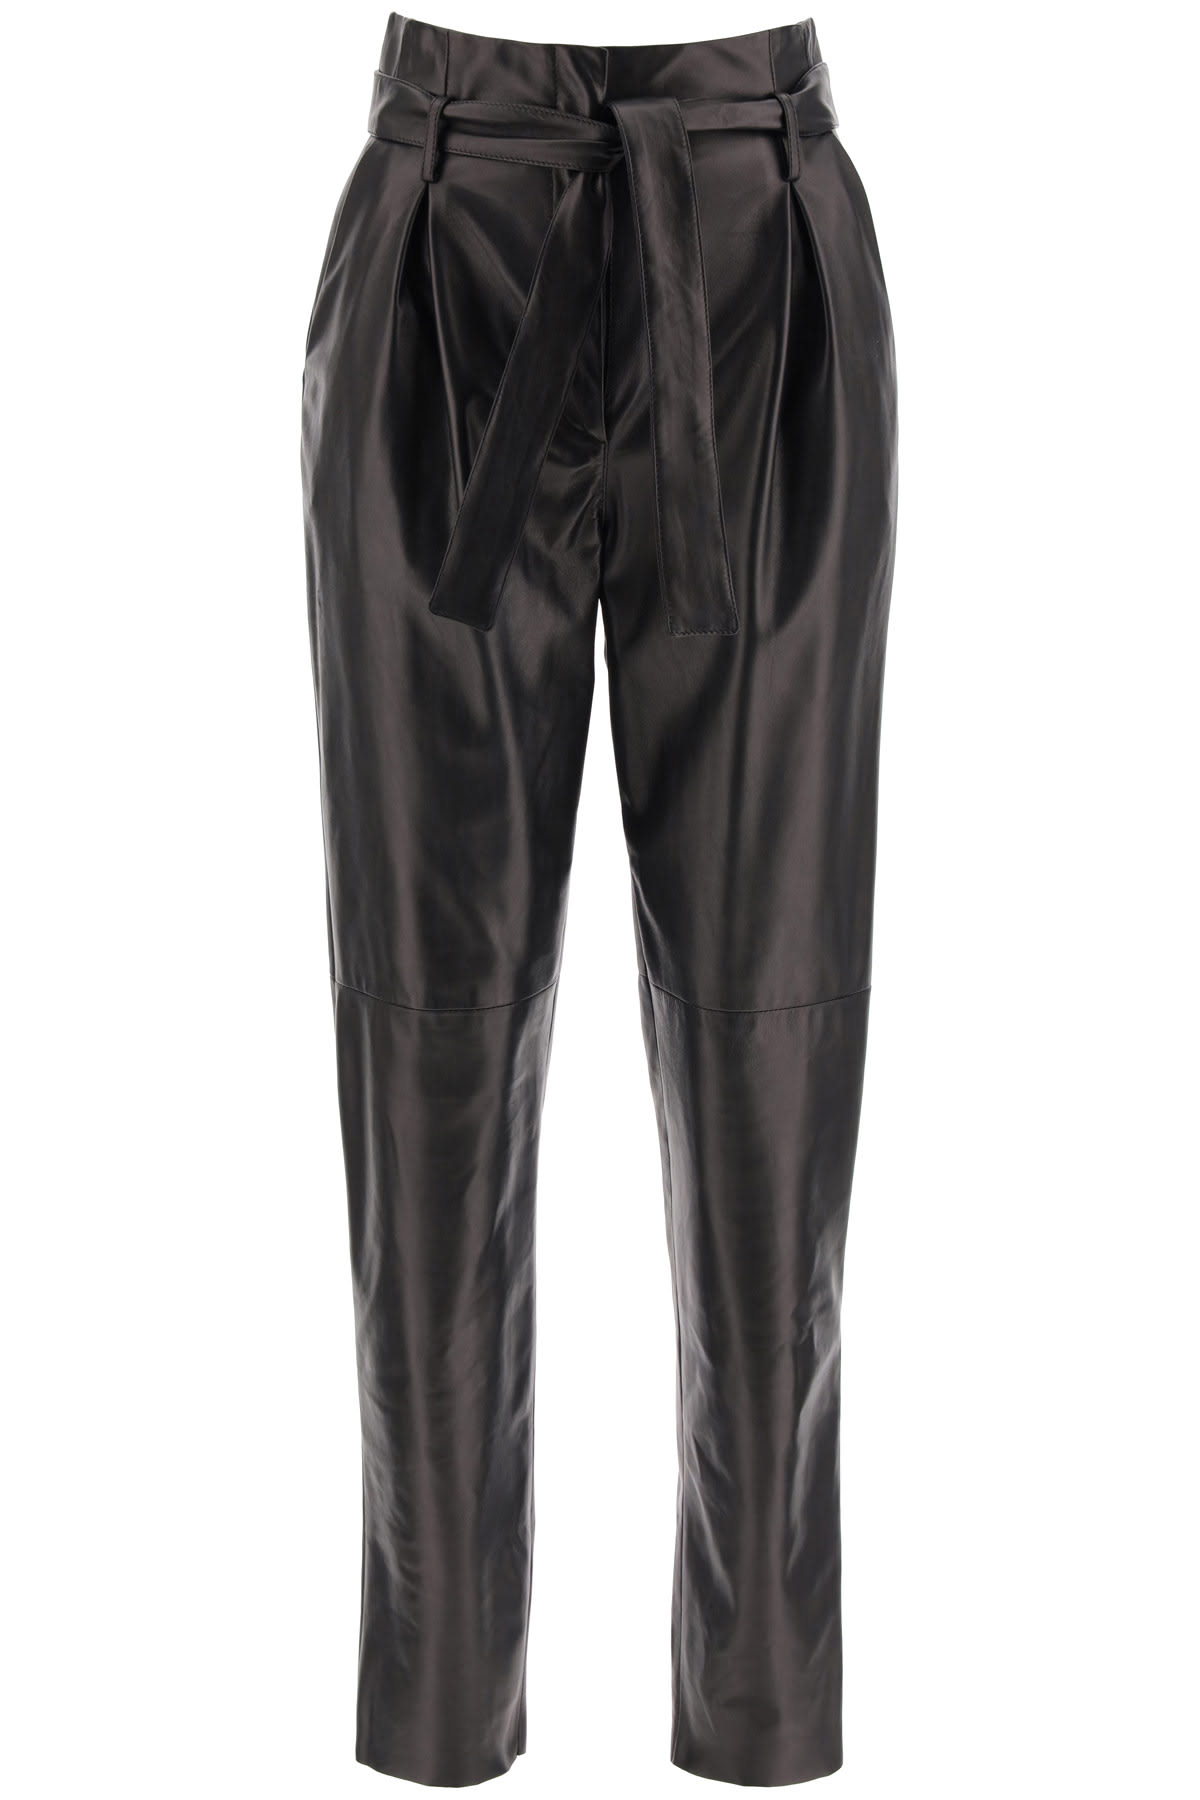 DROMe Leather Paperbag Pants